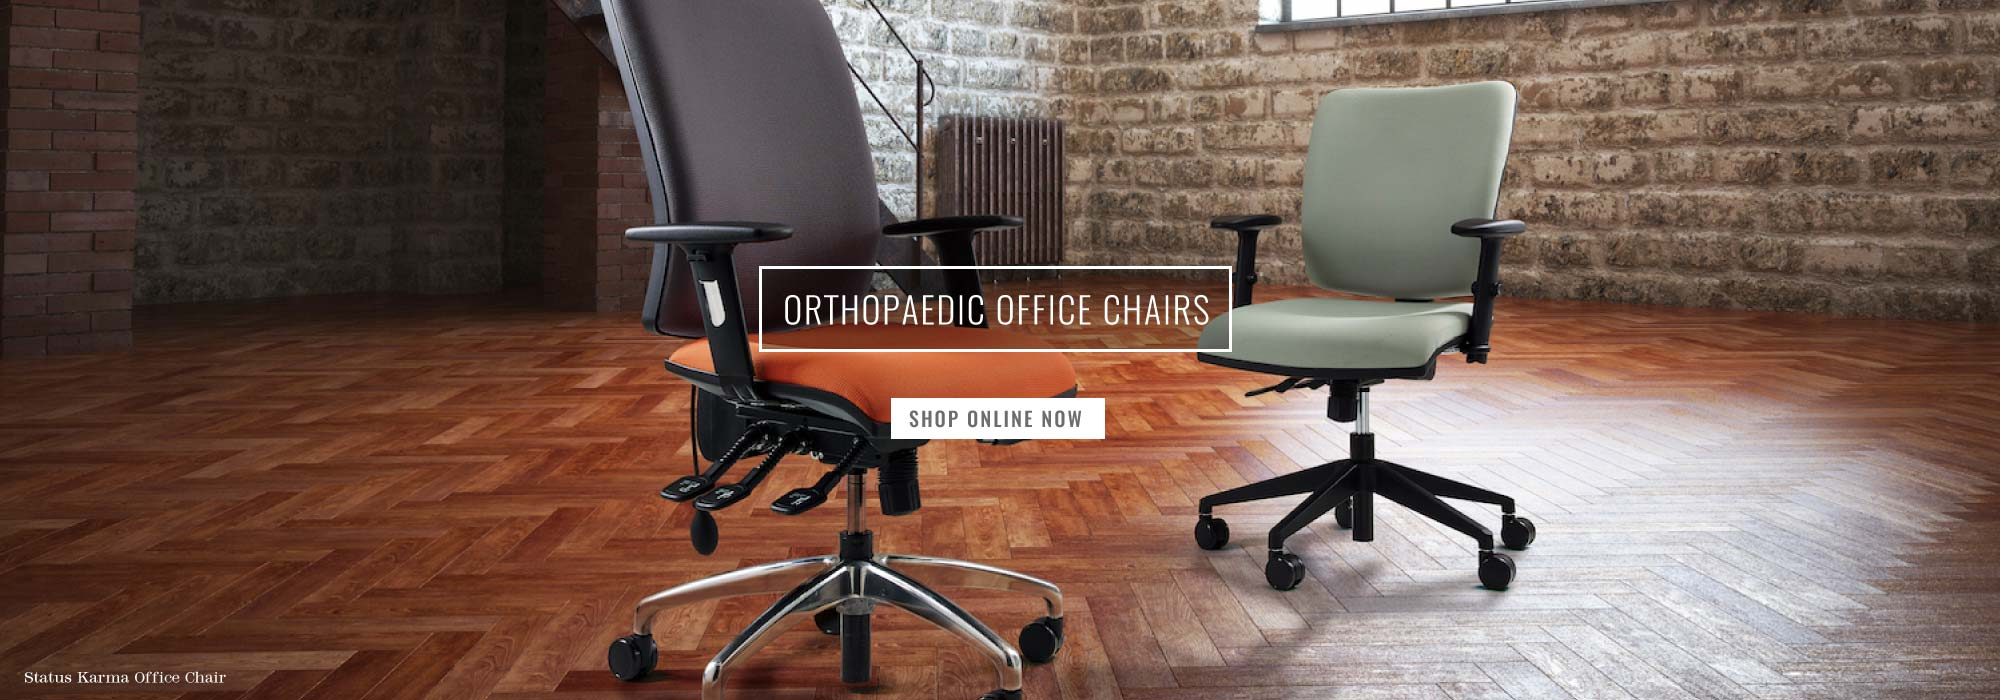 Orange & turquoise Status Karma office chair